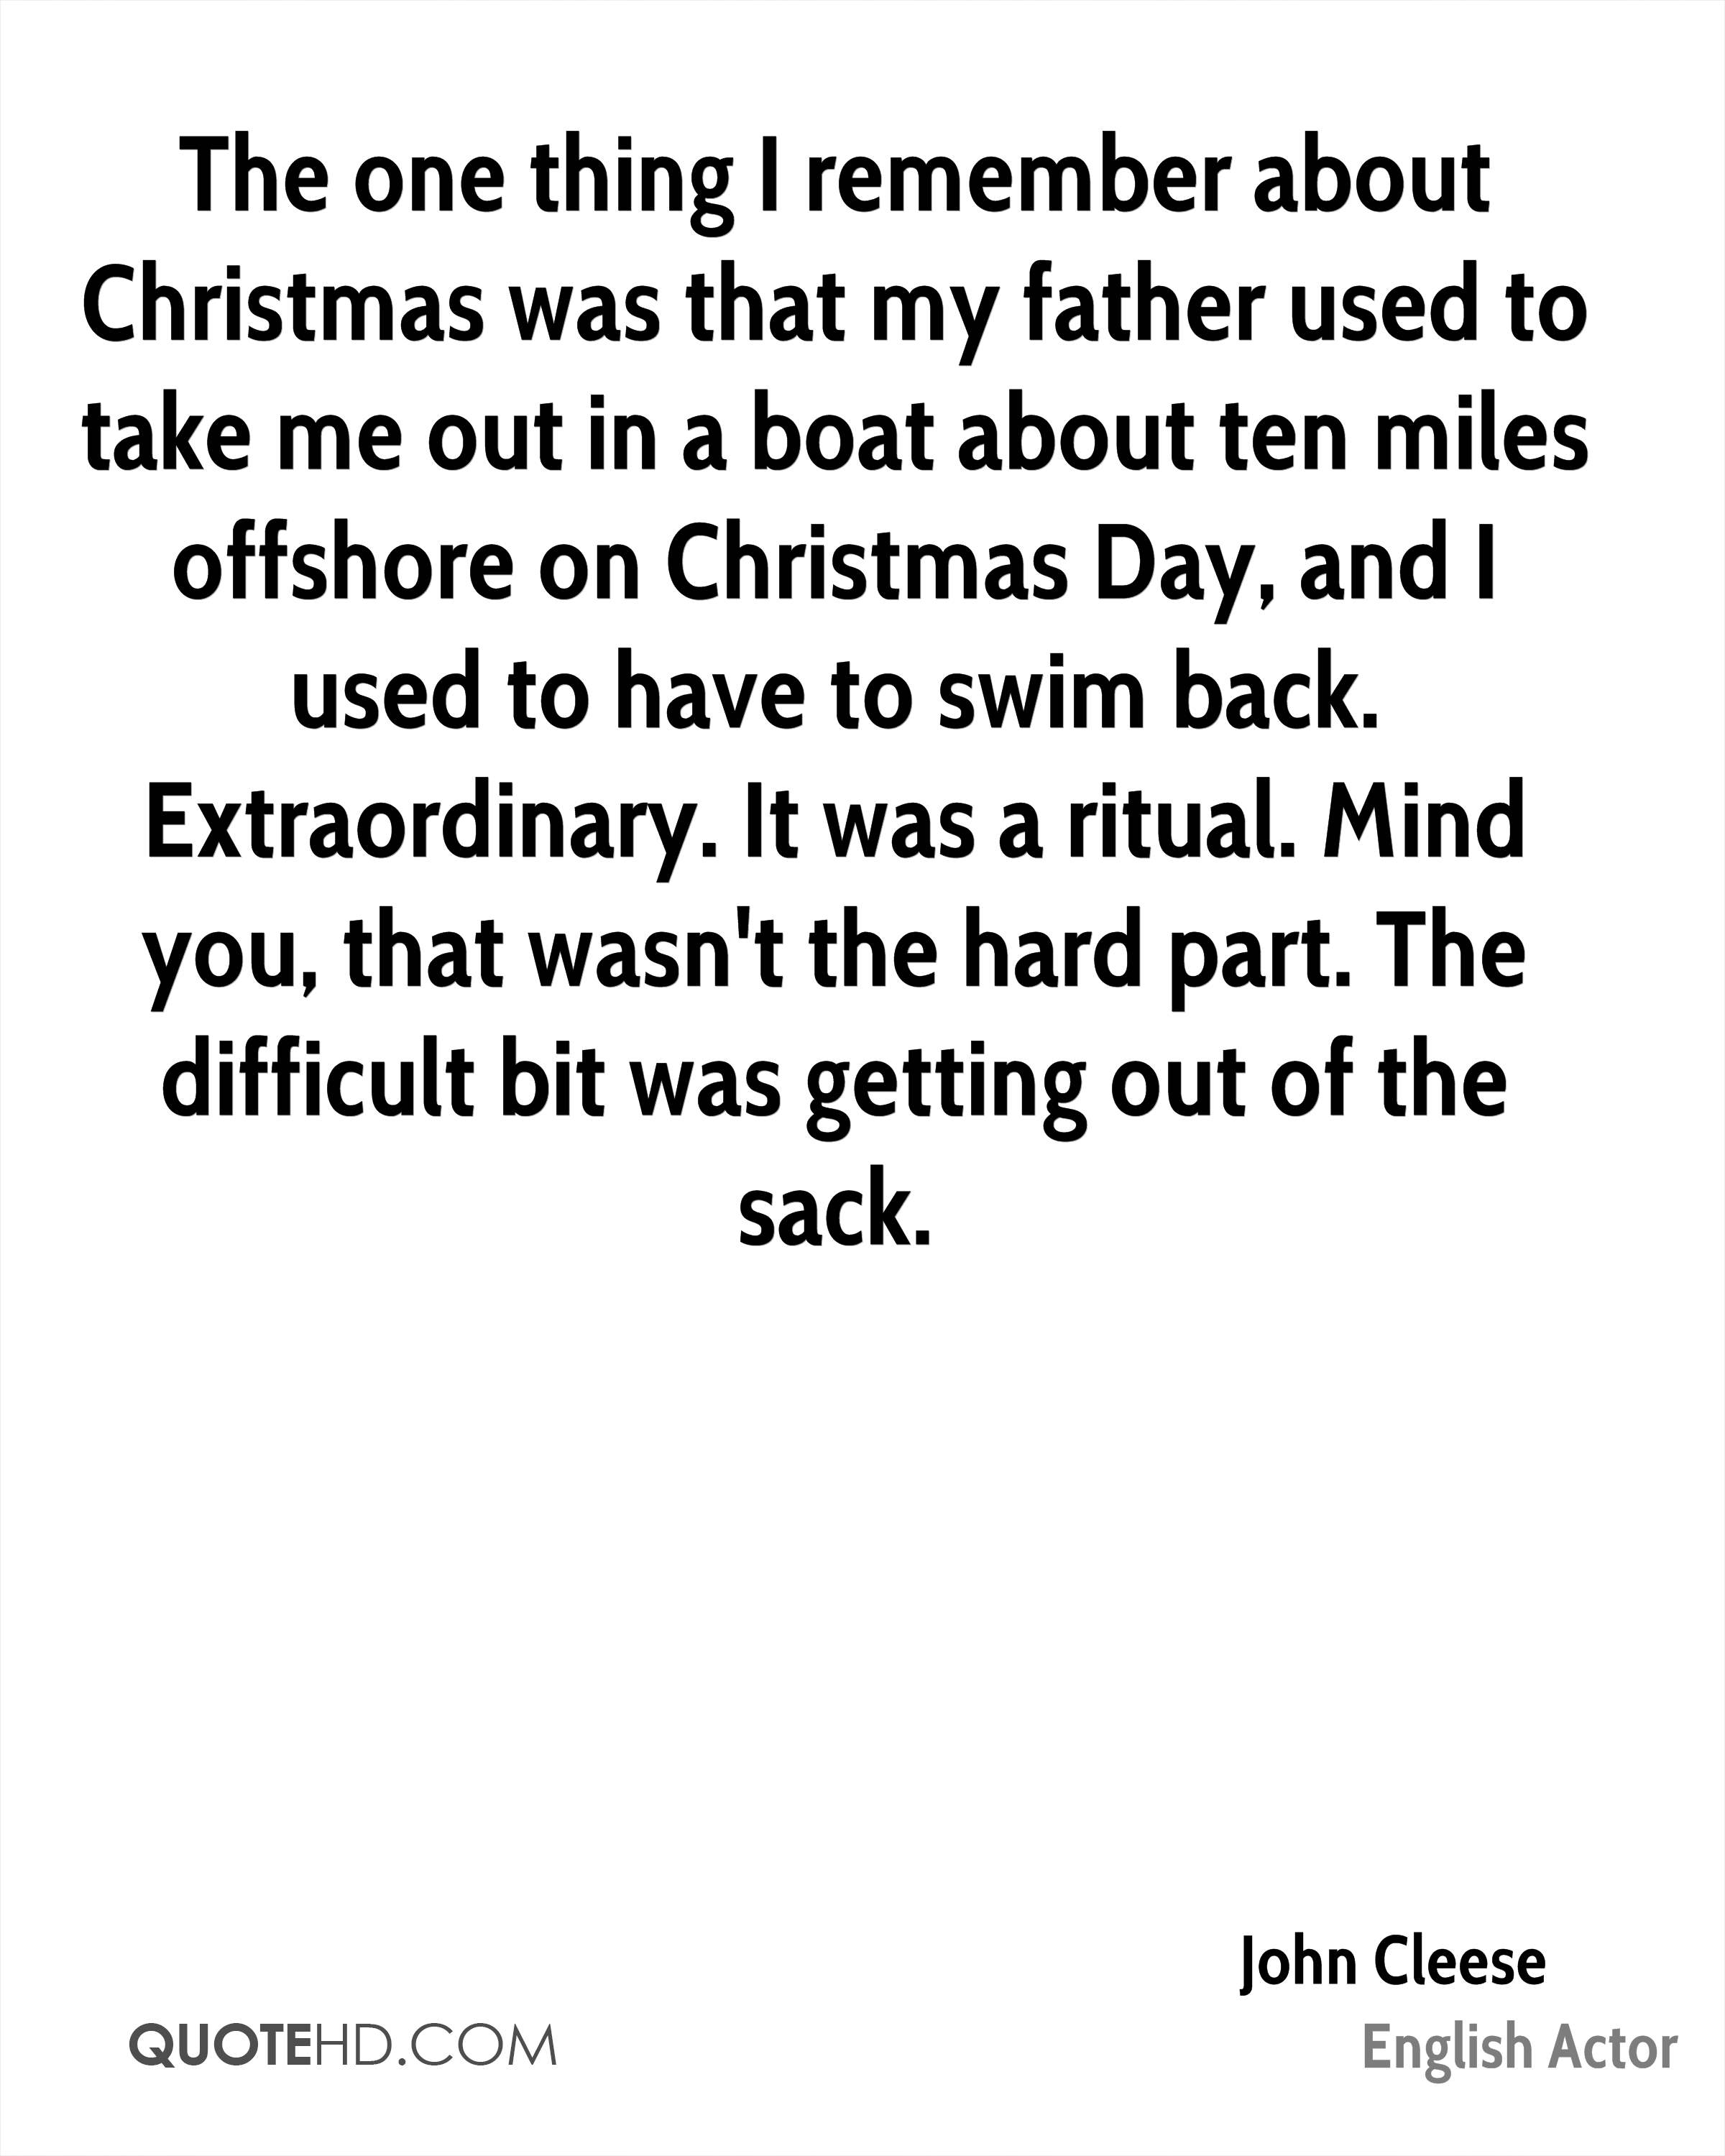 The one thing I remember about Christmas was that my father used to take me out in a boat about ten miles offshore on Christmas Day, and I used to have to swim back. Extraordinary. It was a ritual. Mind you, that wasn't the hard part. The difficult bit was getting out of the sack.